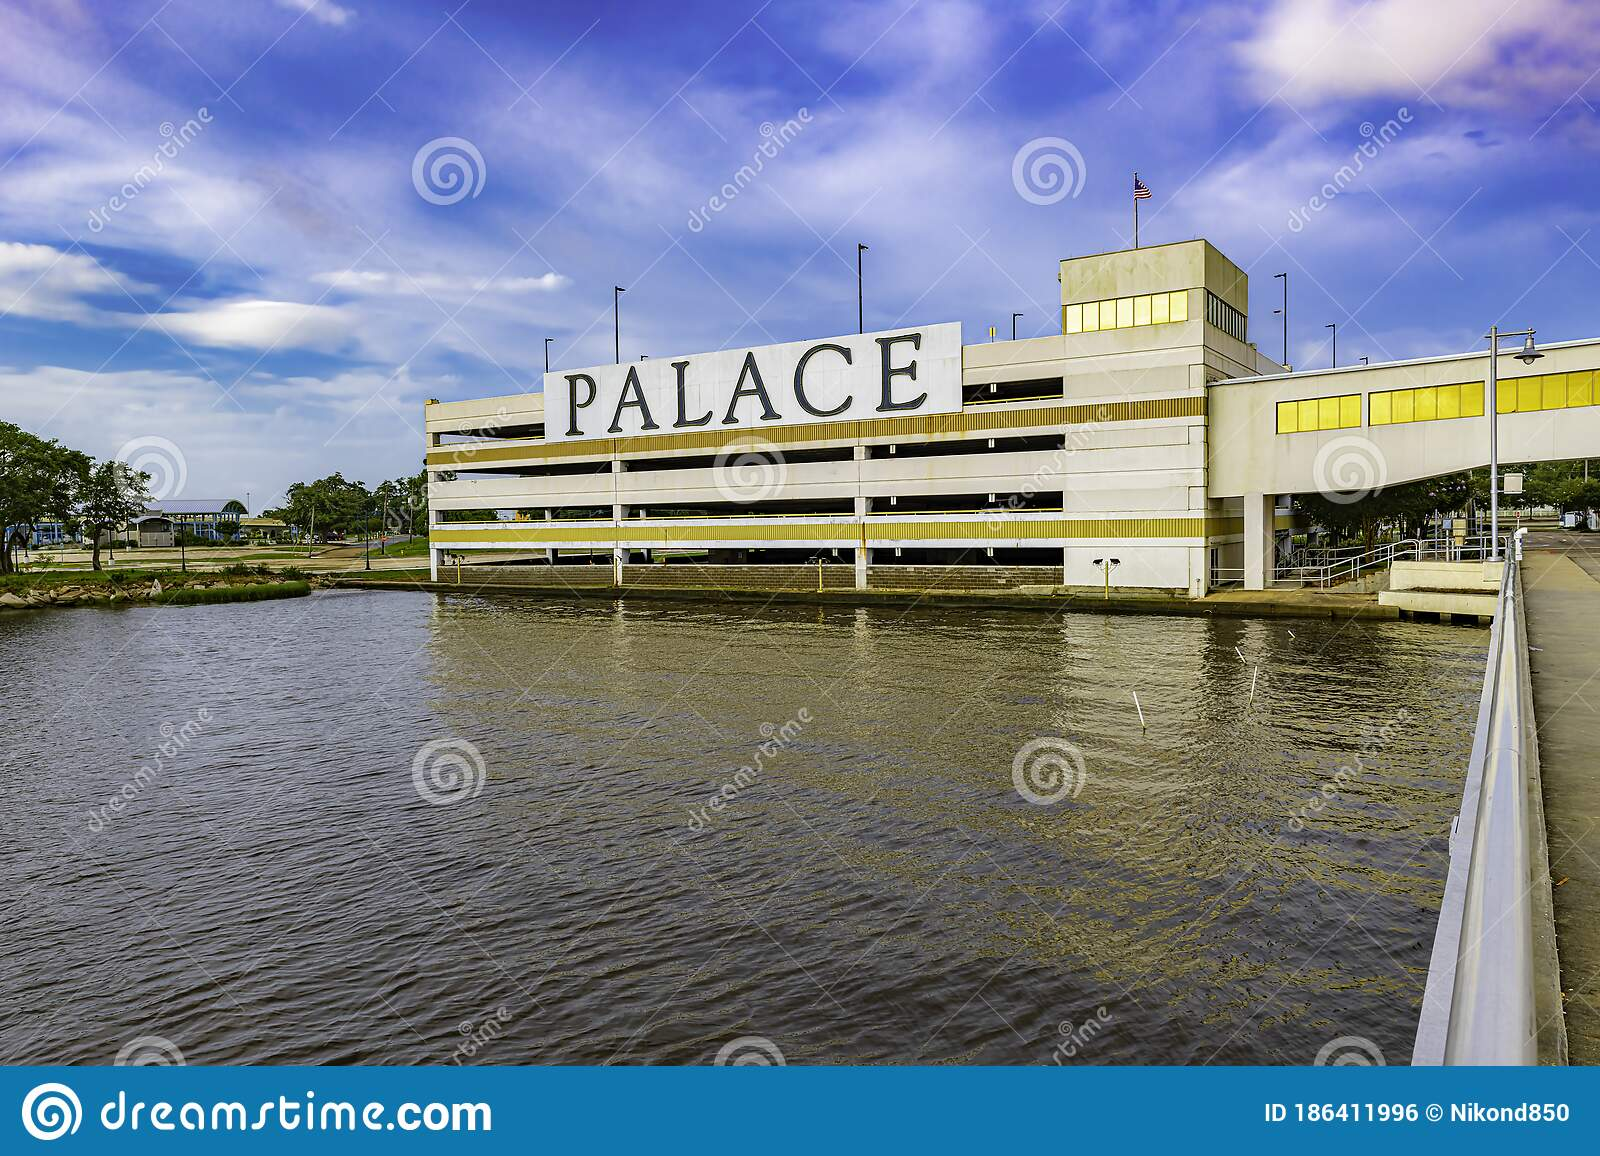 the palace casino in mississippi